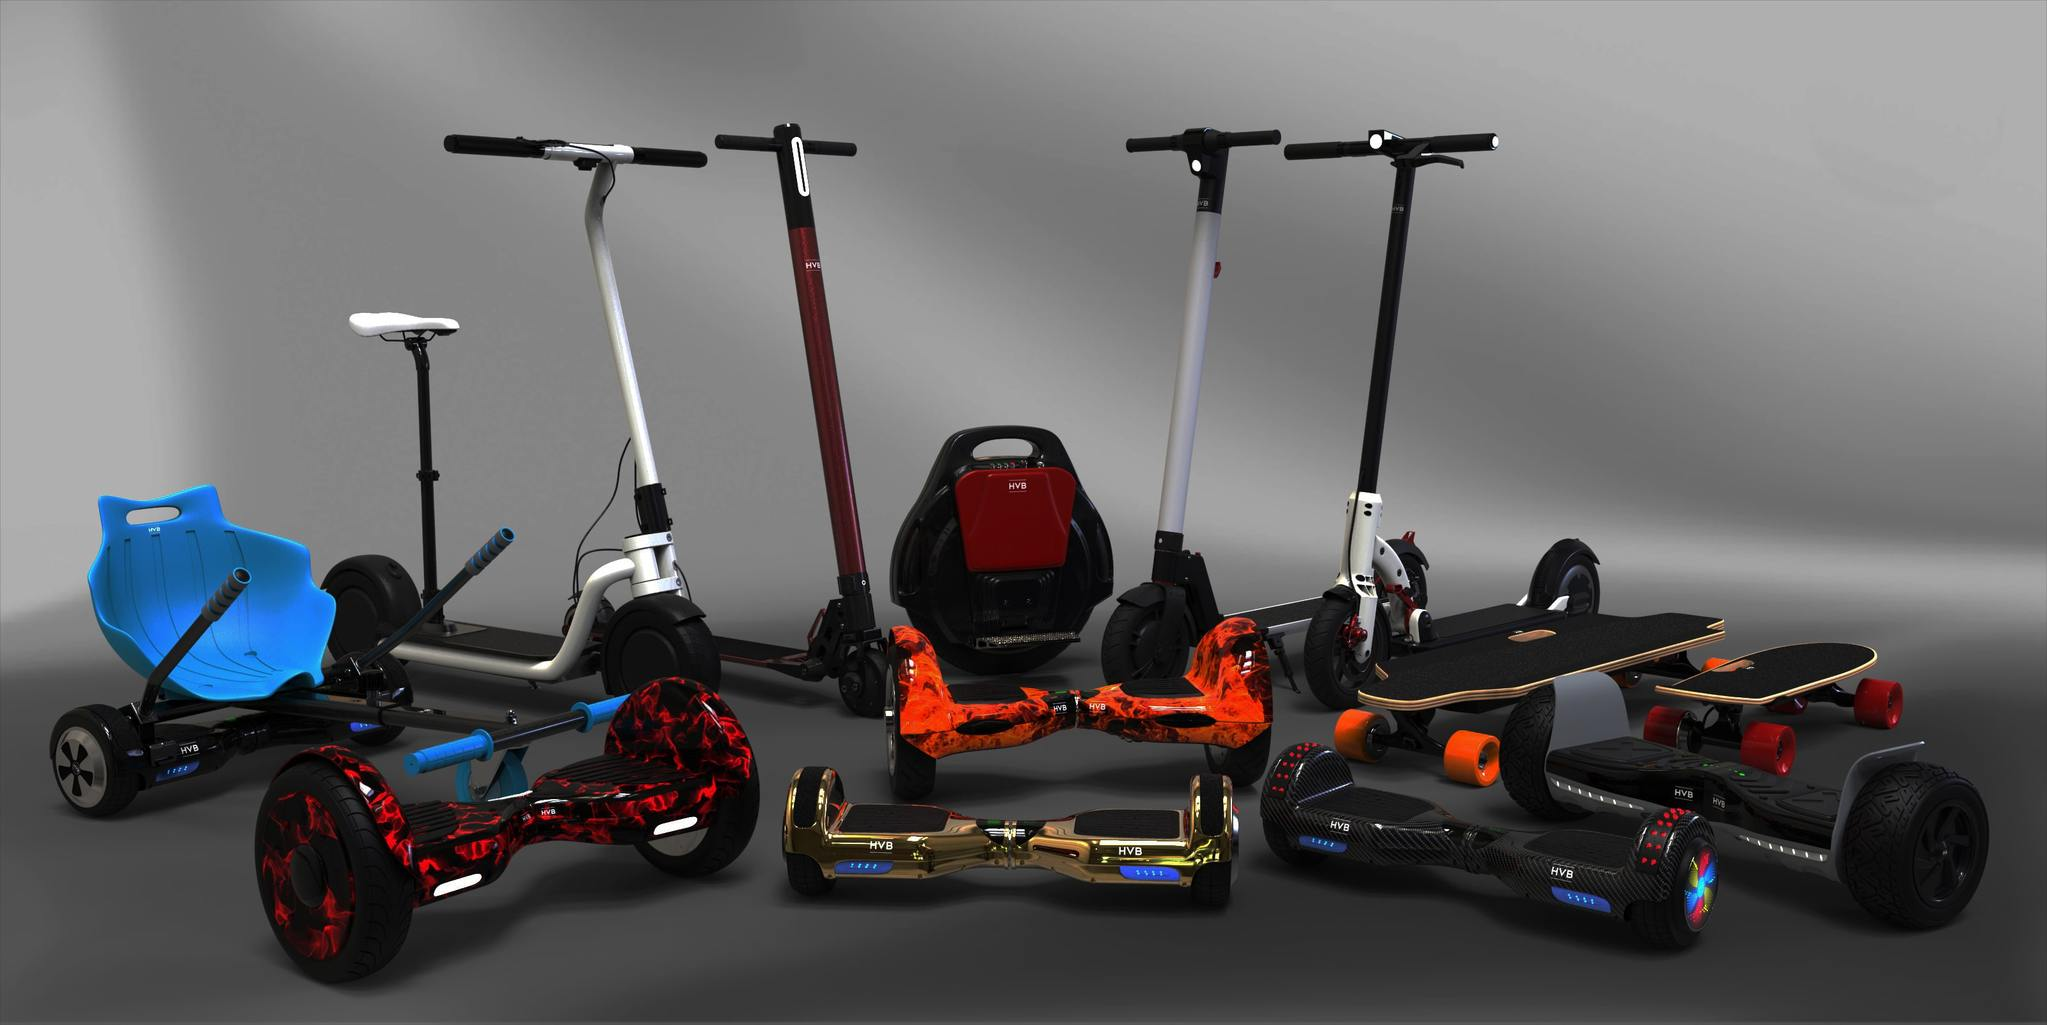 Pro-eRiders Electronic Scooters and Bikes